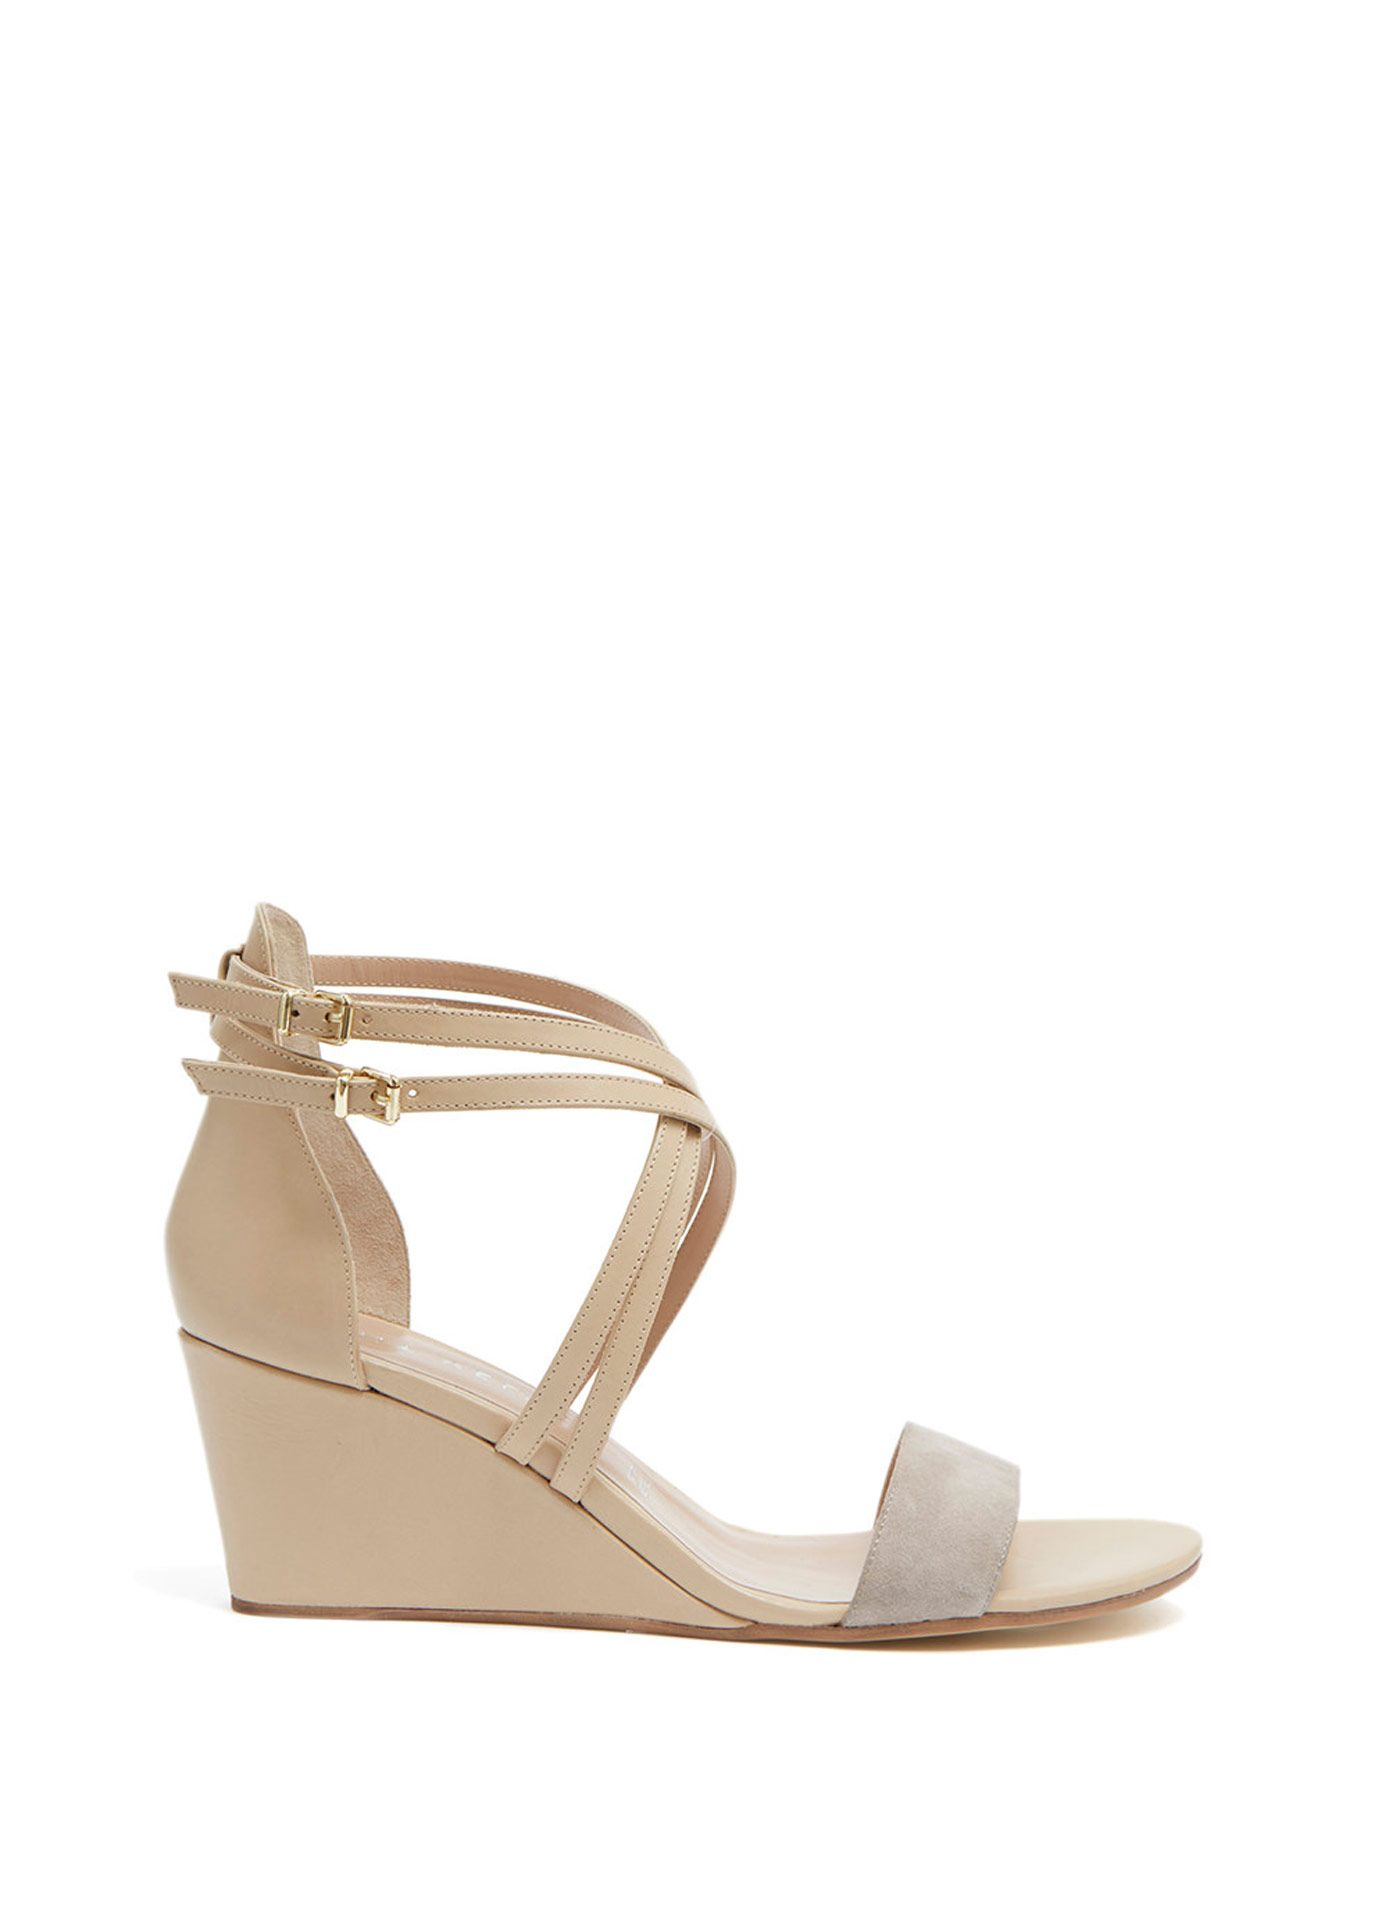 Mink Gaia Suede Wedge Shoes Leather Sandals Wedges Wedge Shoes